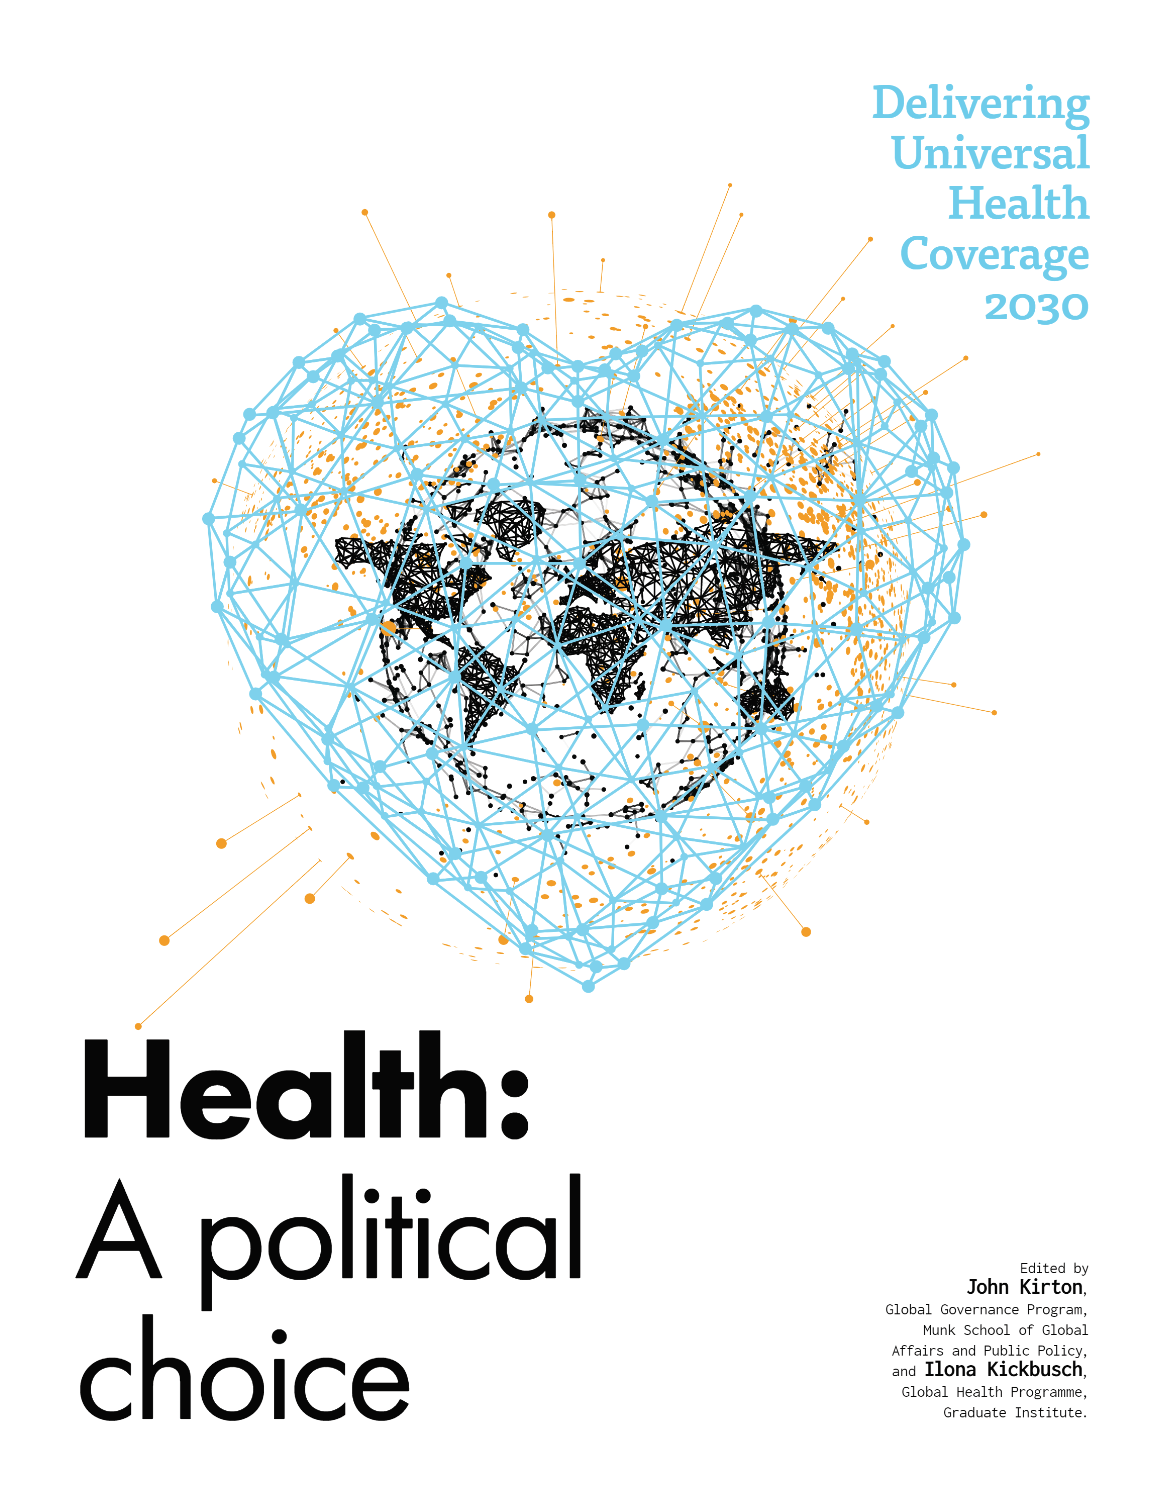 Health is a Political Choice